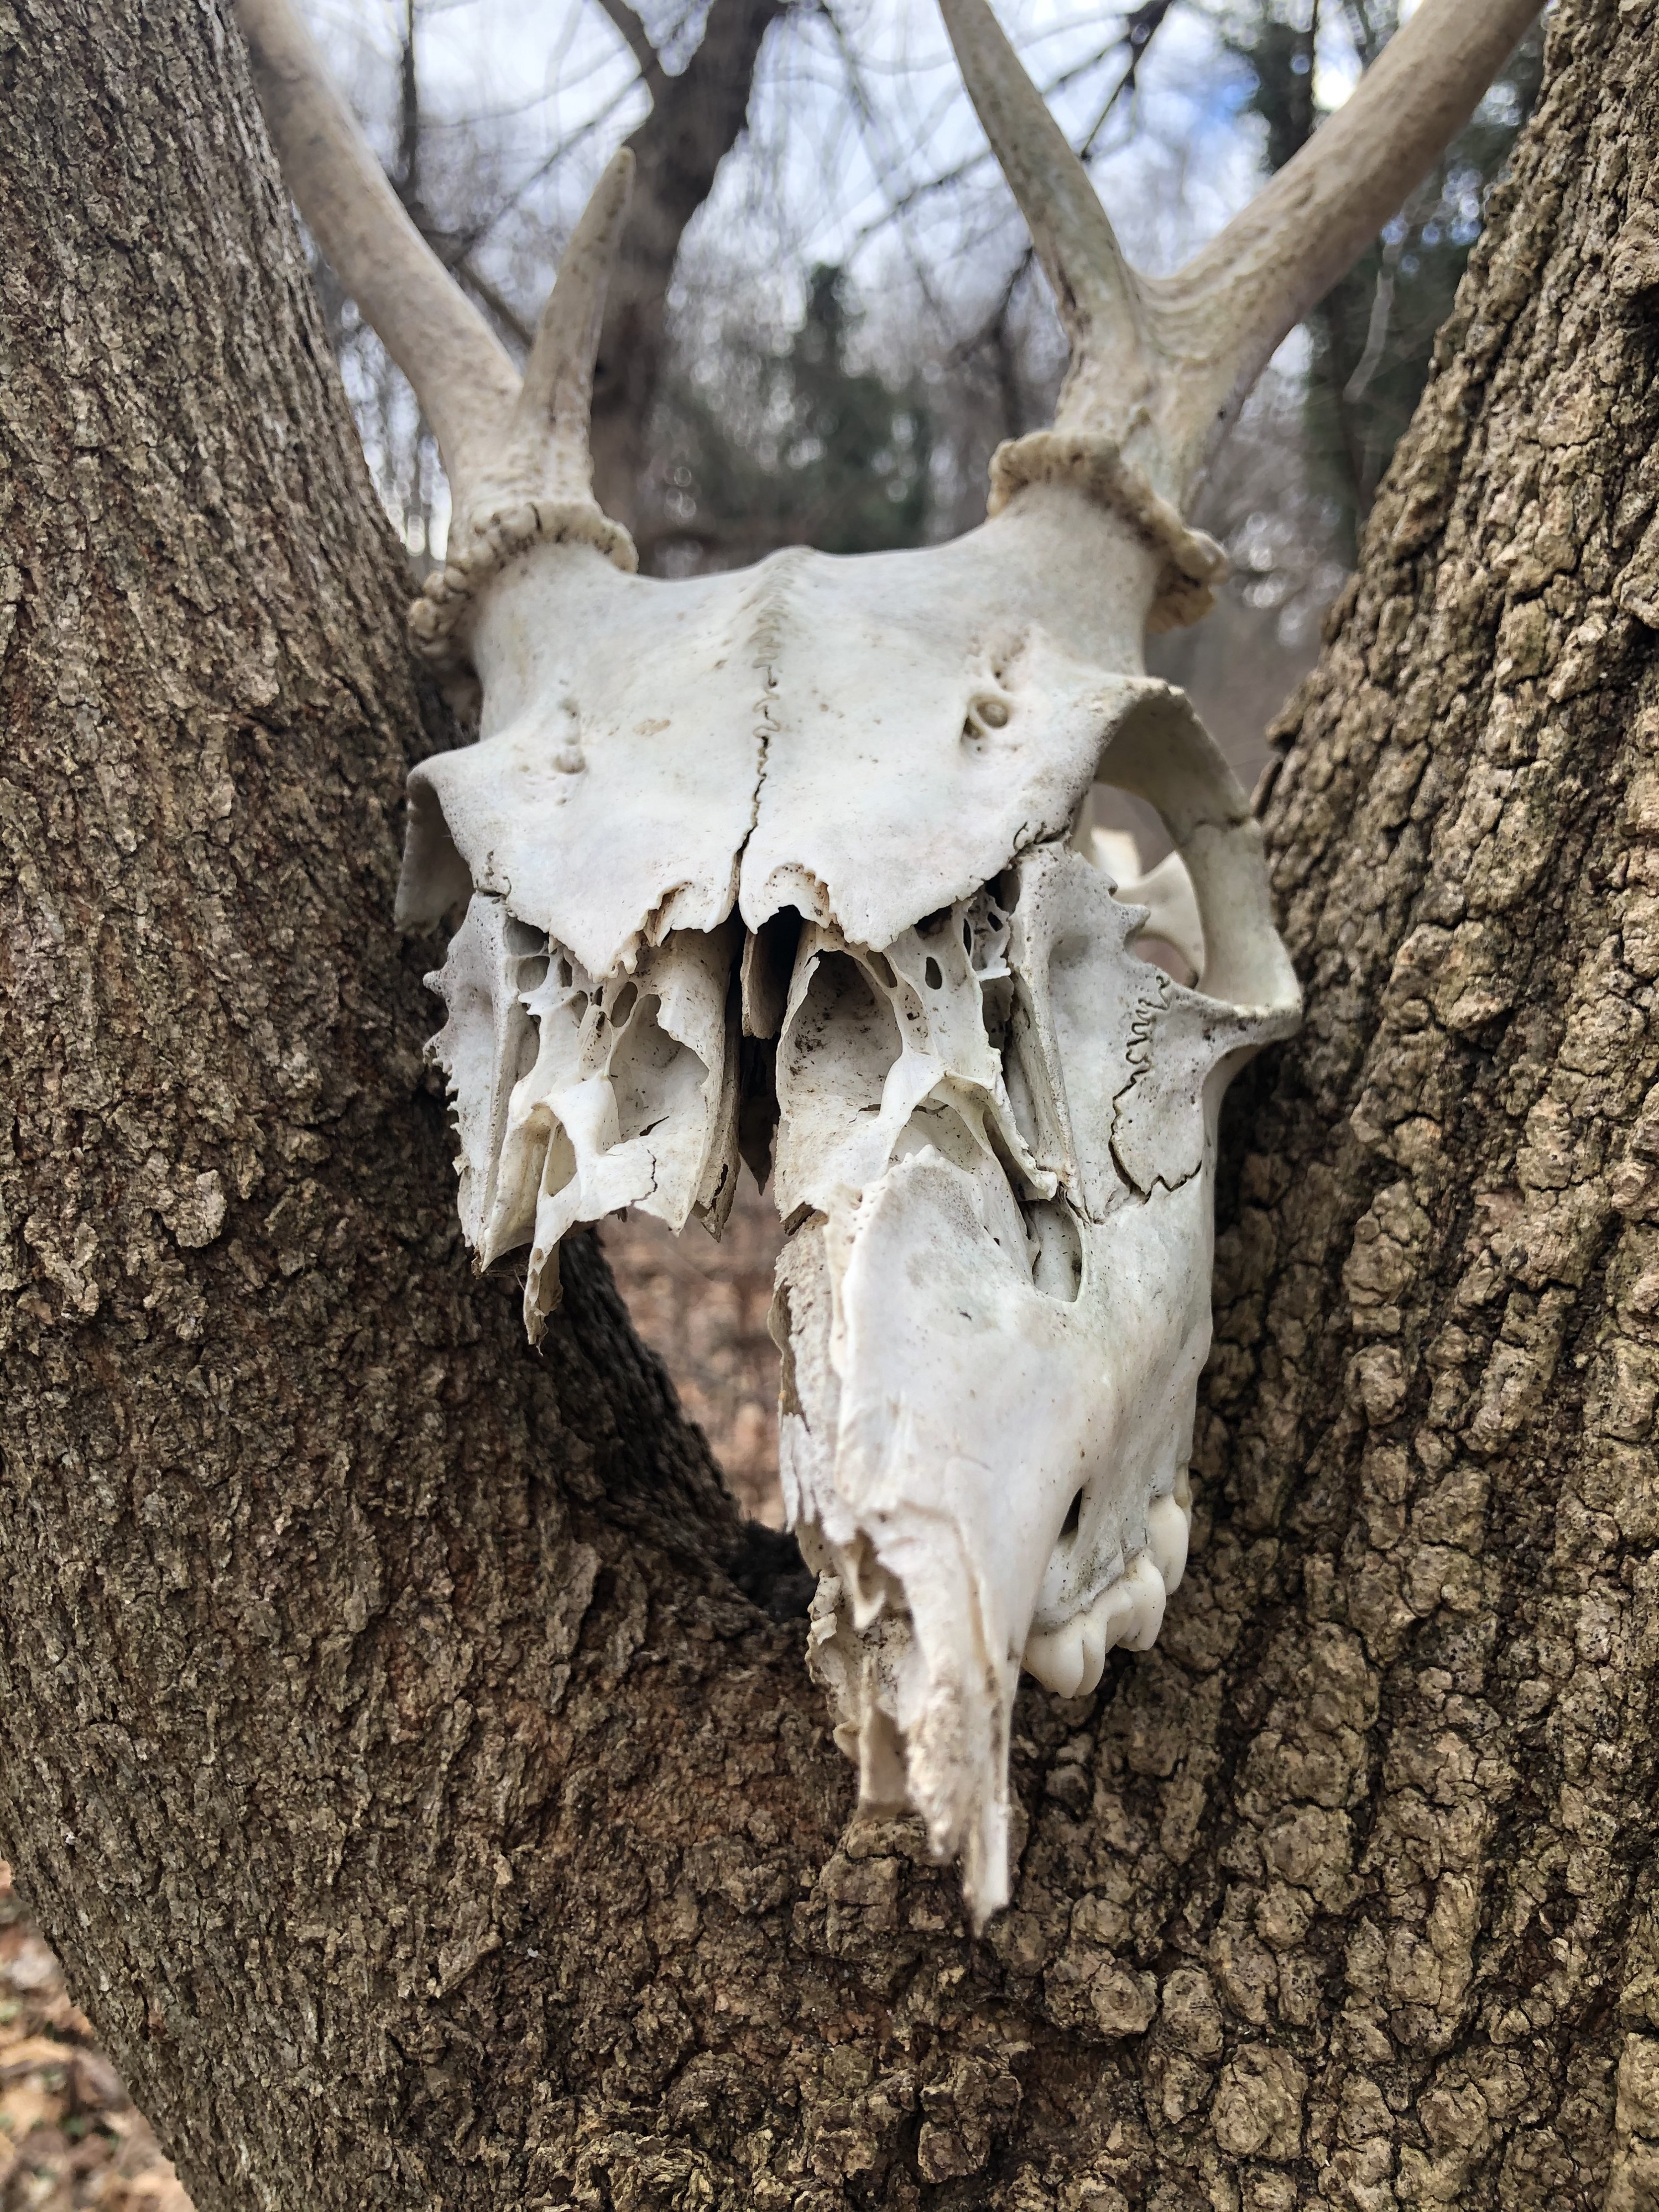 A photo of a deer skull, partially gone on the left front, balanced in between branches of a tree.